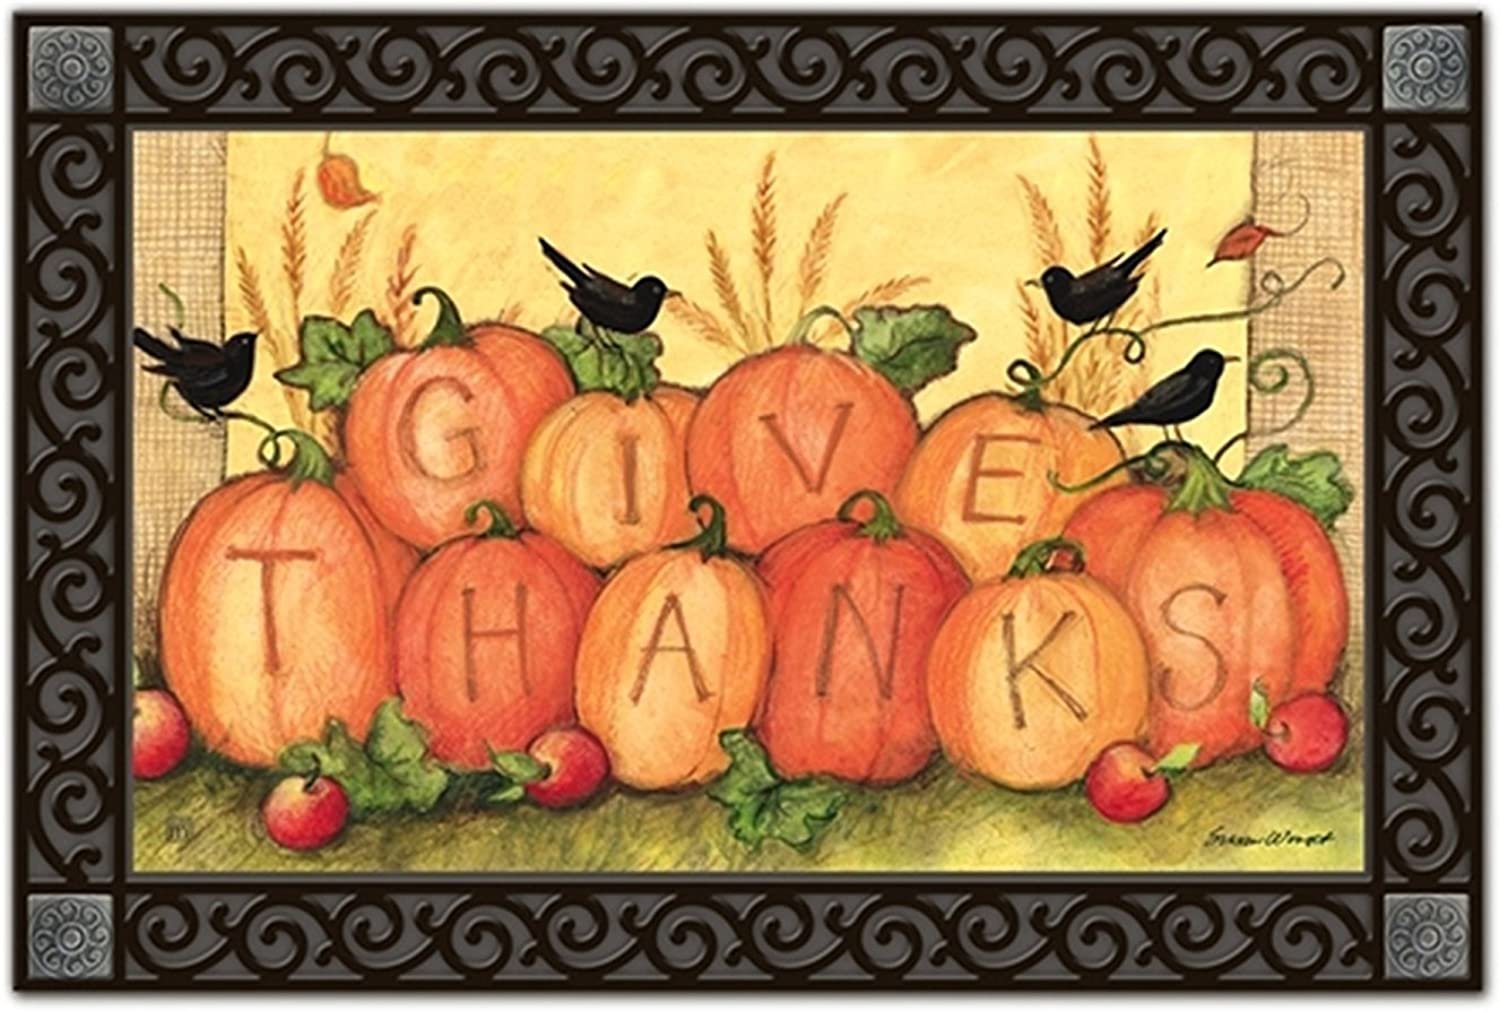 Give Thanks Scarecrow Autumn MatMates Doormat Fall   Thanksgiving Indoor Outdoor 18 x30